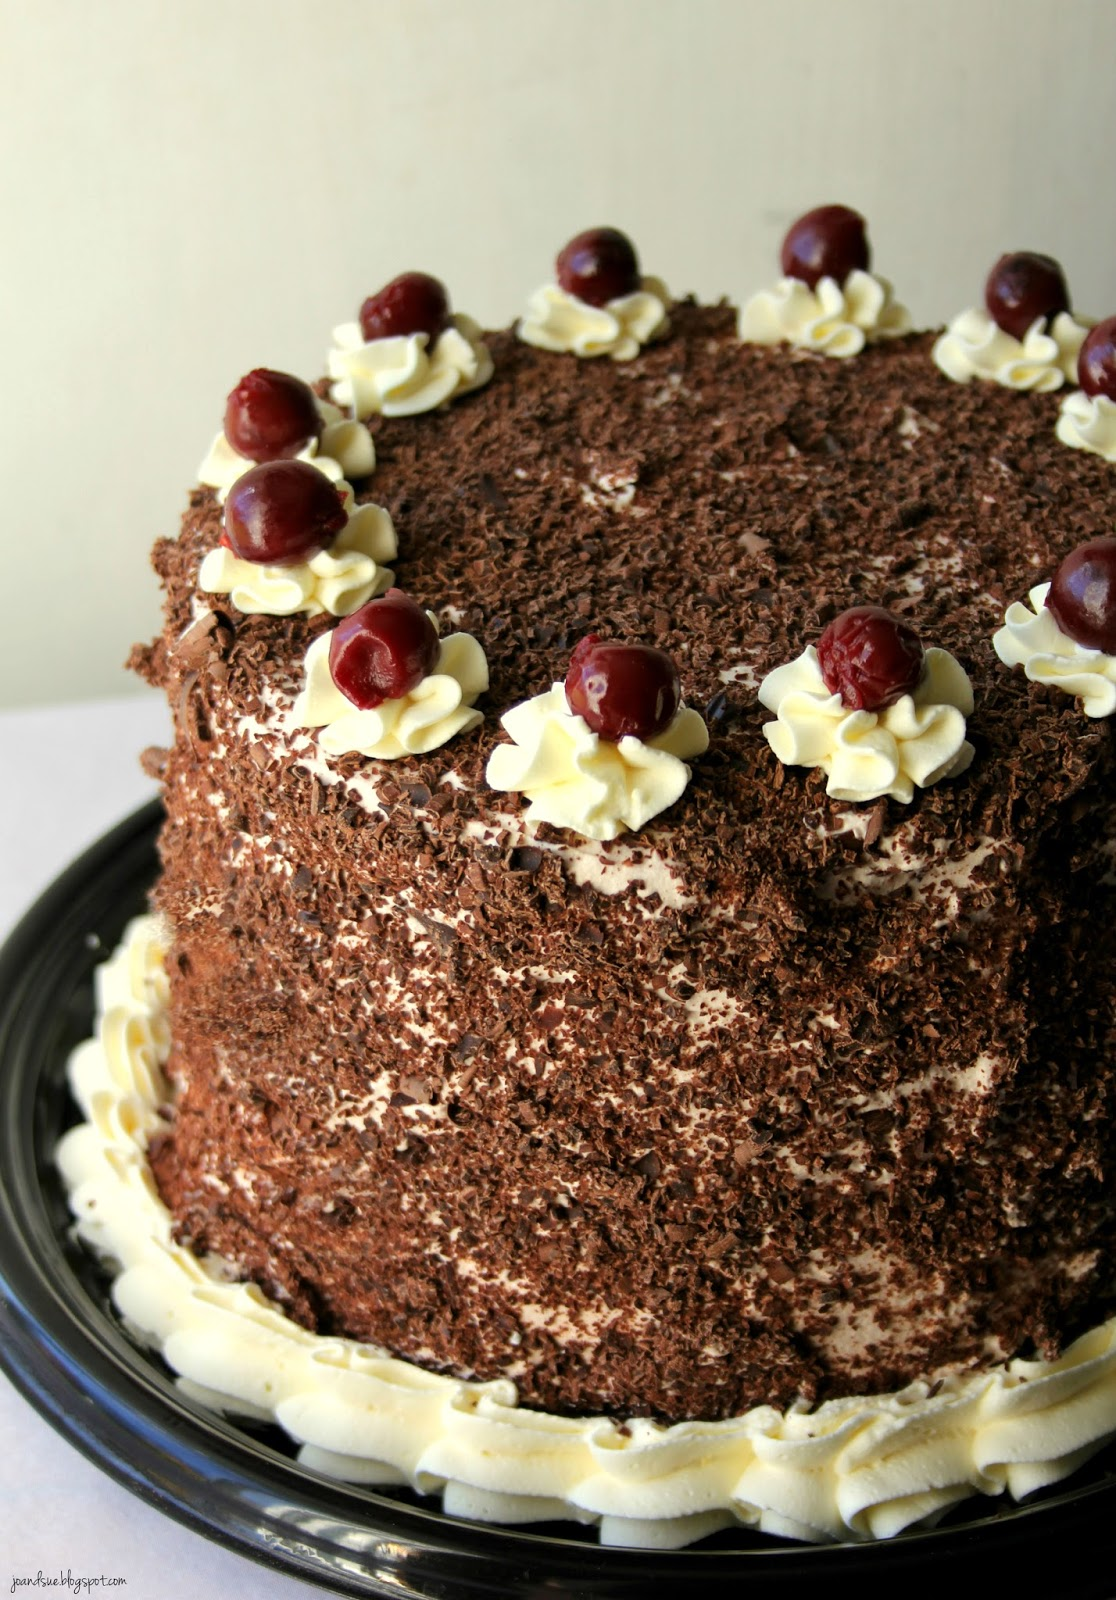 How To Make Chocolate Curls For Black Forest Cake